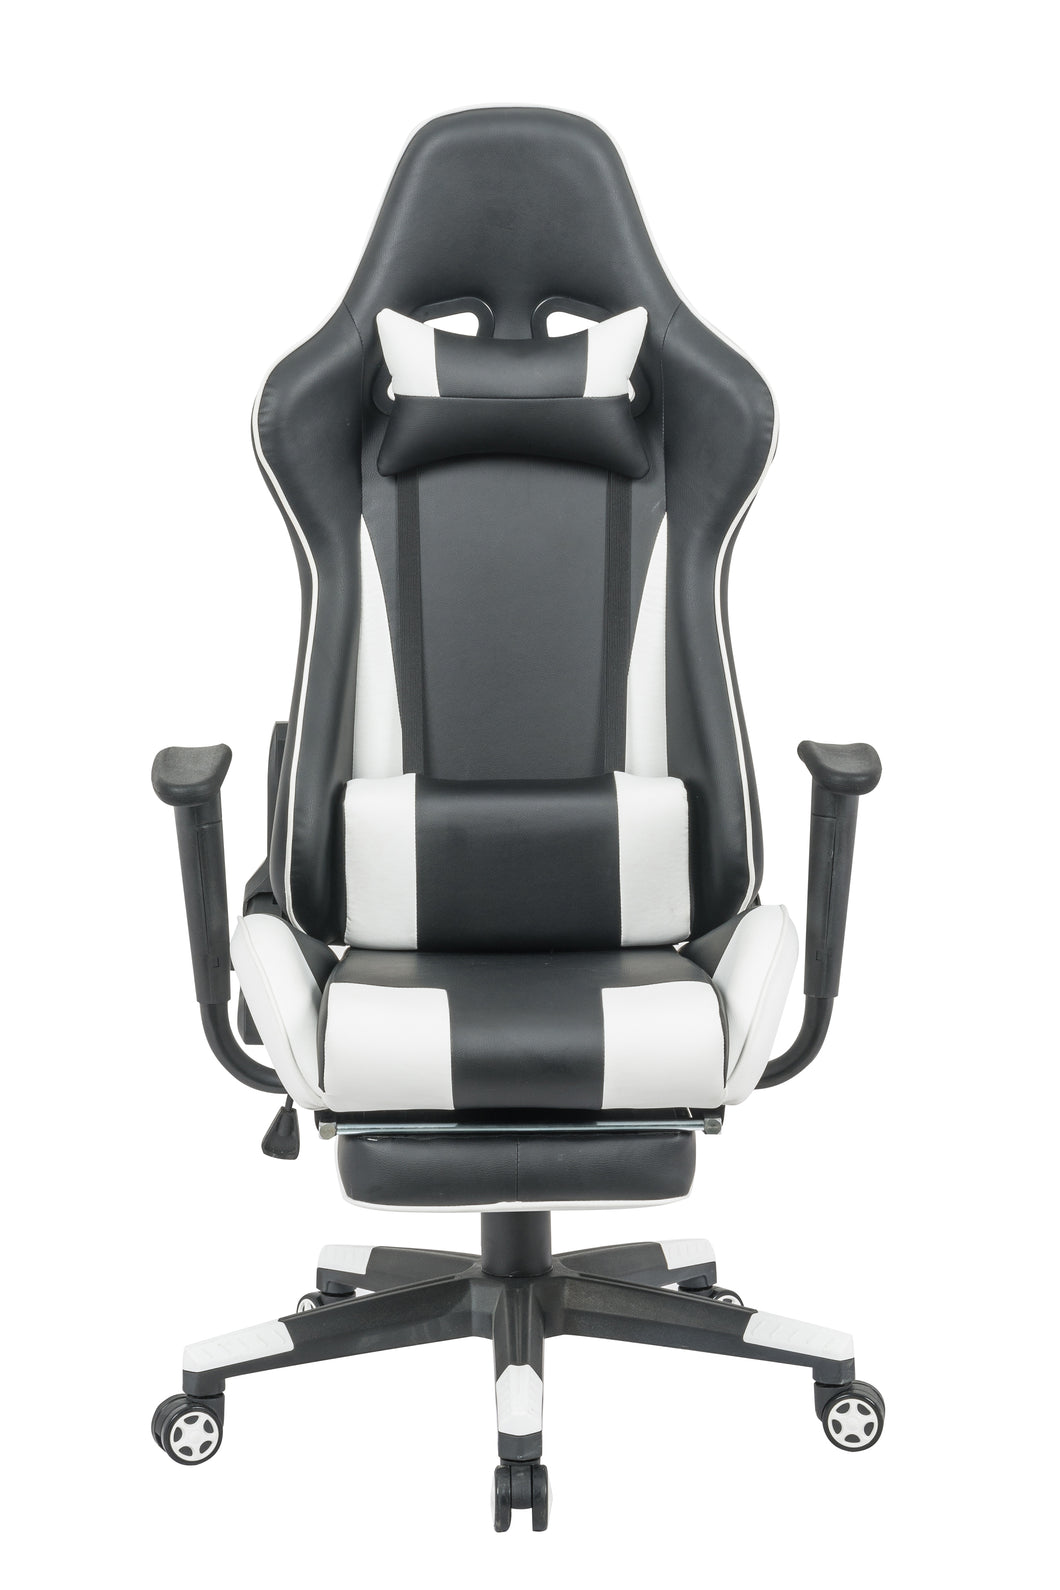 Grey Color High Back Executive Gaming Chair w Footrest Office Computer Seating Racer Recliner Chairs